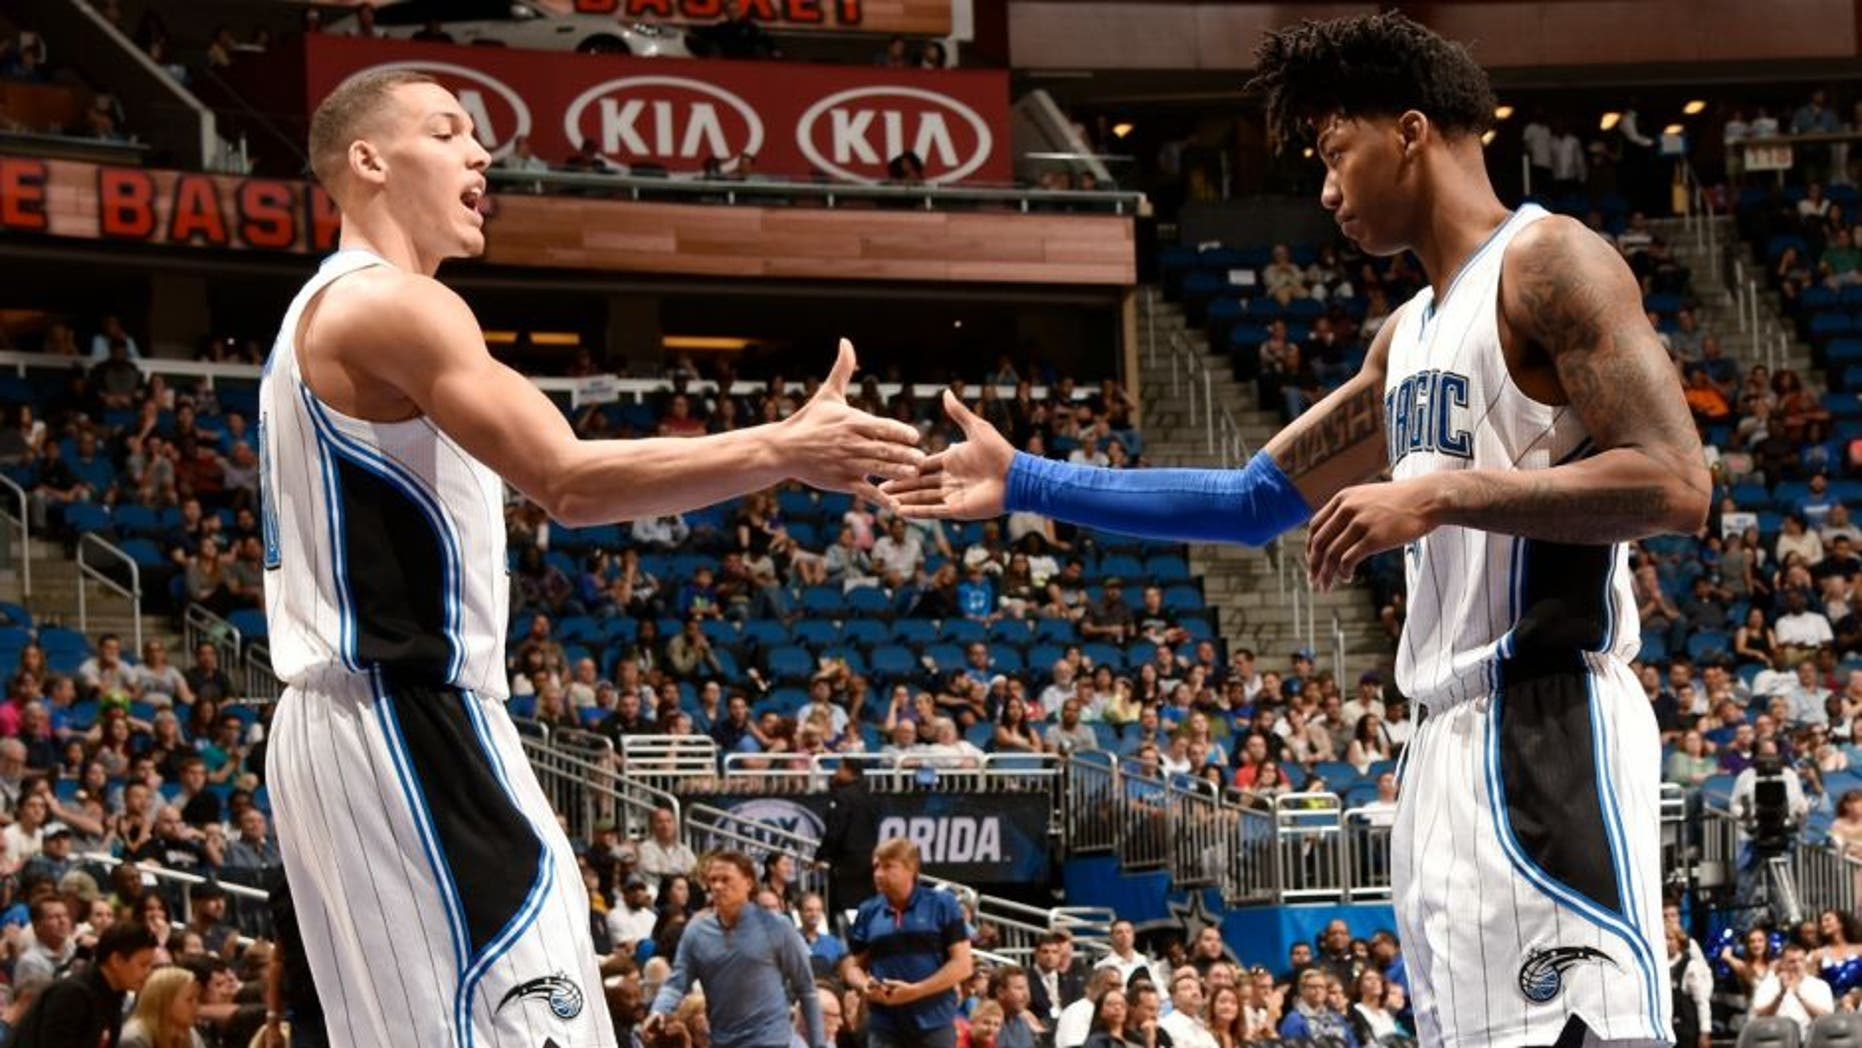 ORLANDO, FL - APRIL 3: Elfrid Payton #4 of the Orlando Magic shakes hands with Aaron Gordon #00 of the Orlando Magic during the game against the Memphis Grizzlies on April 3, 2016 at Amway Center in Orlando, Florida. NOTE TO USER: User expressly acknowledges and agrees that, by downloading and or using this photograph, User is consenting to the terms and conditions of the Getty Images License Agreement. Mandatory Copyright Notice: Copyright 2016 NBAE (Photo by Fernando Medina/NBAE via Getty Images)